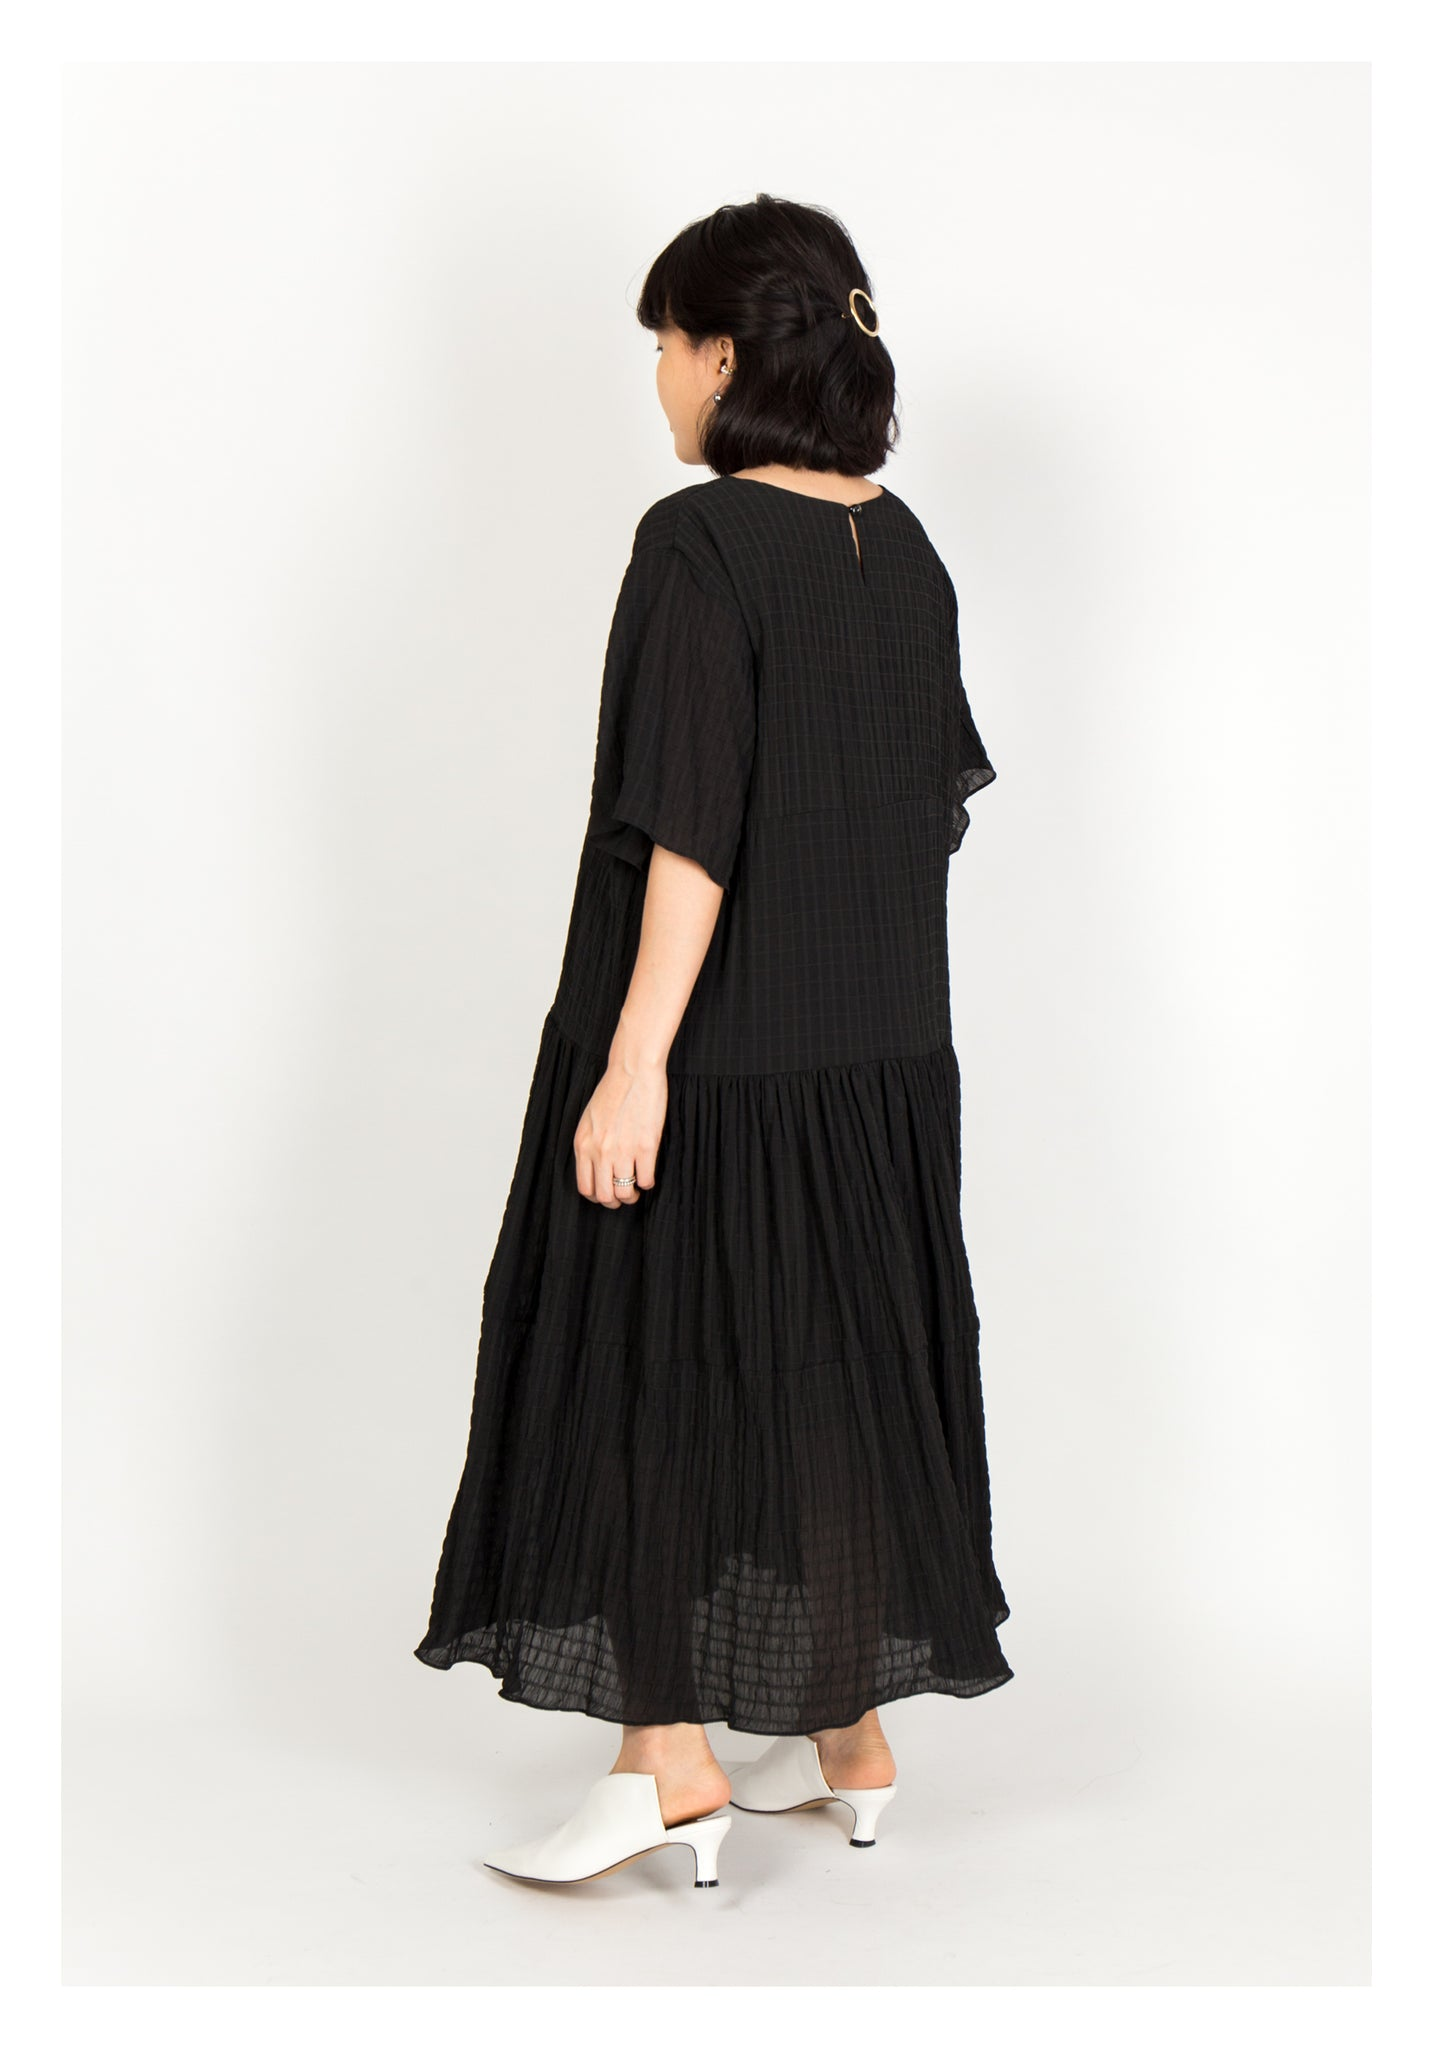 Textured Chiffon Soft Dress Black